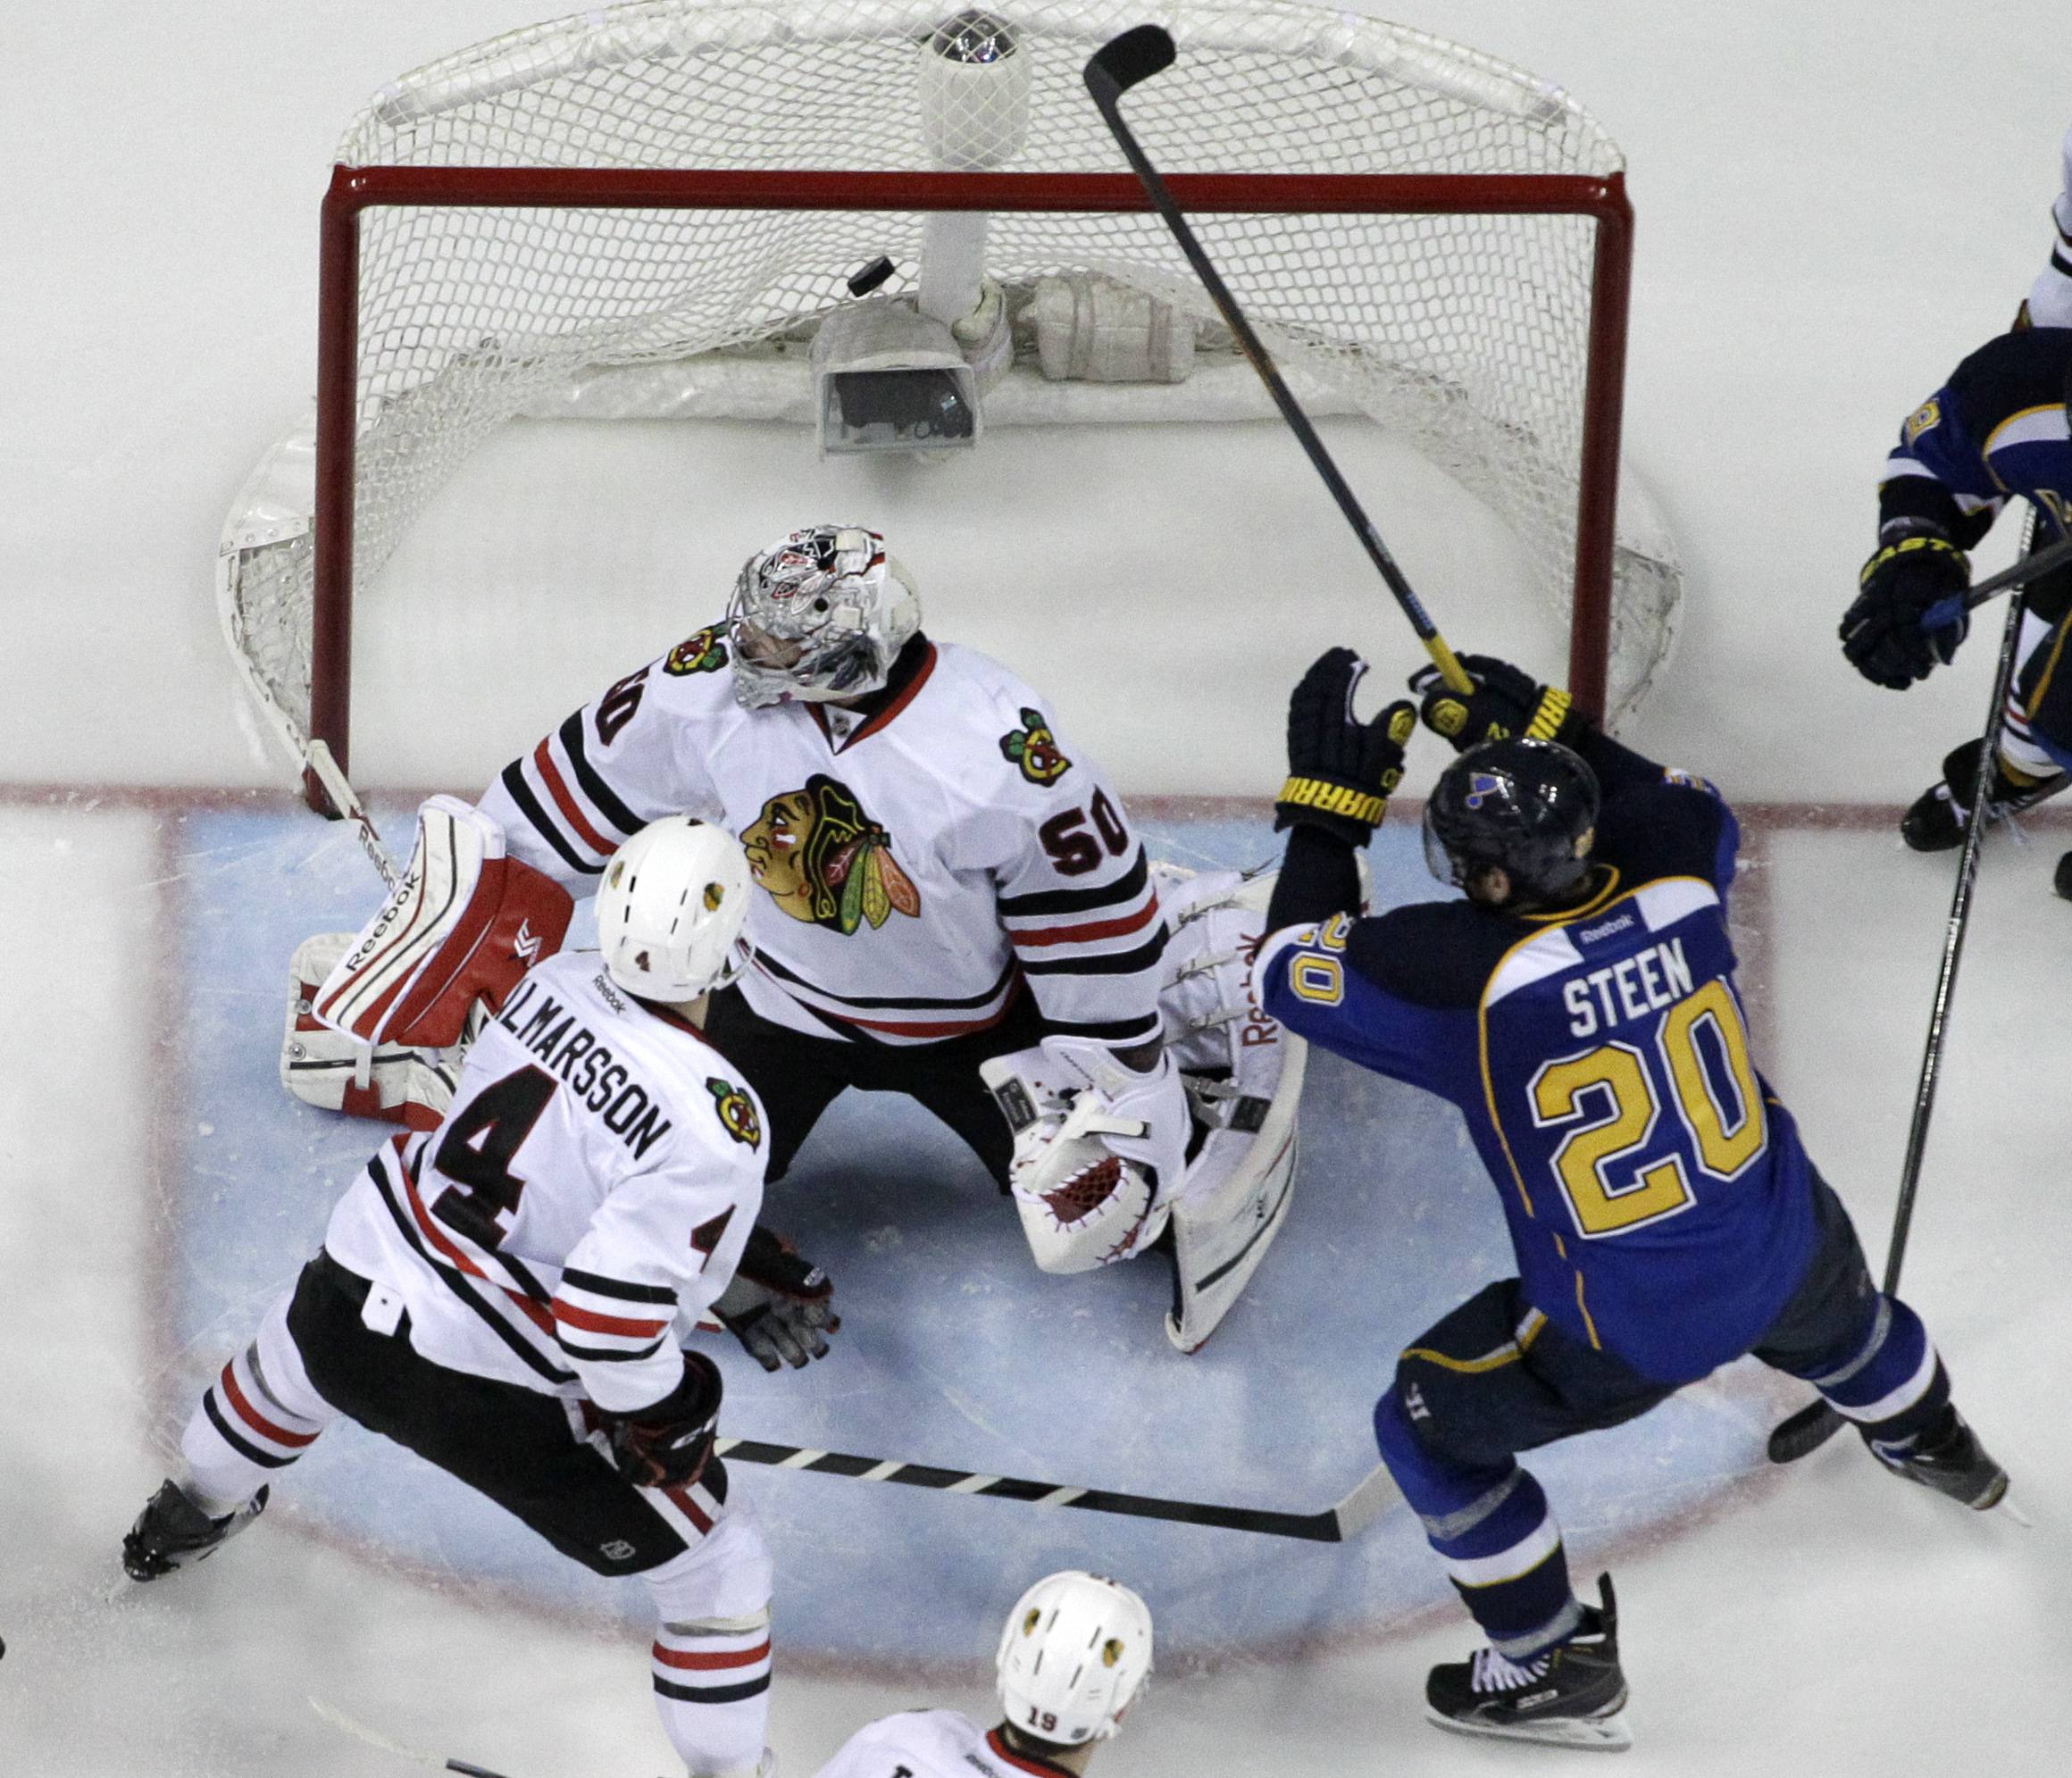 St. Louis Blues' Alexander Steen (20) scores the game-winning goal past Chicago Blackhawks goalie Corey Crawford and Niklas Hjalmarsson (4) during the third overtime in Game 1 of a first-round NHL hockey Stanley Cup playoff series Thursday, April 17, 2014, in St. Louis. The Blues won 4-3 in triple overtime.